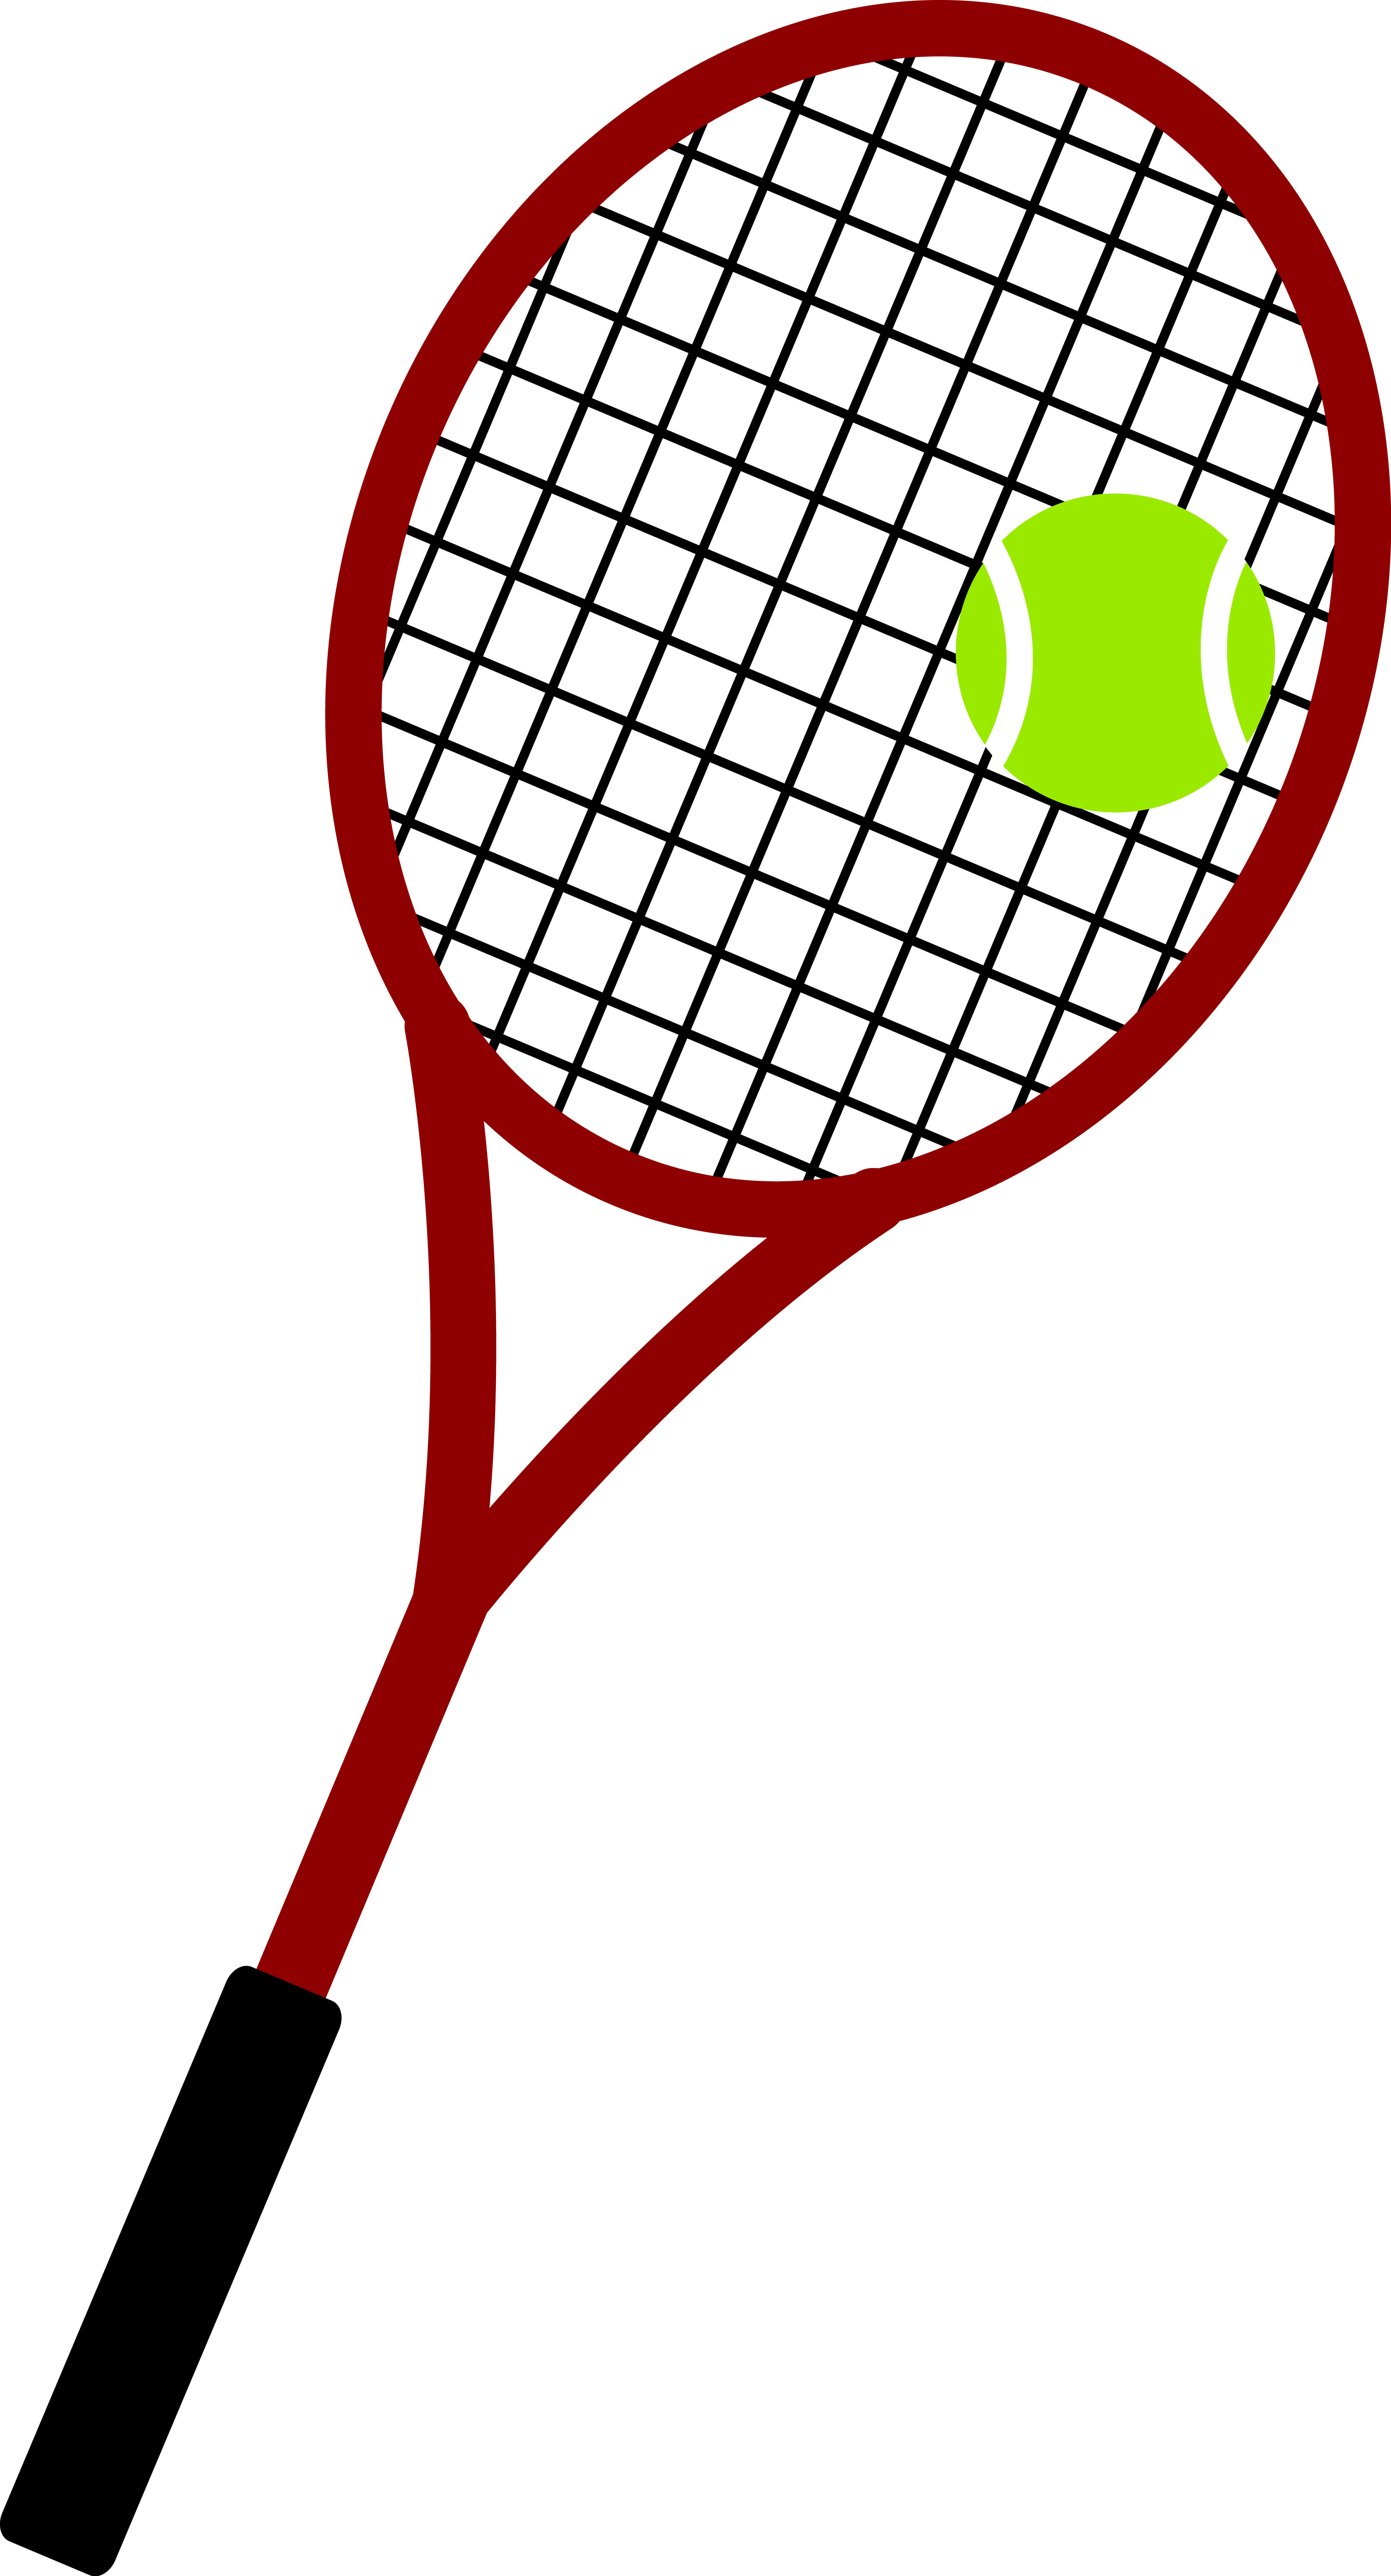 Free basketball and tennis ball clipart image freeuse download Tennis ball clipart bat #42946 - free Tennis ball clipart bat #42946 ... image freeuse download